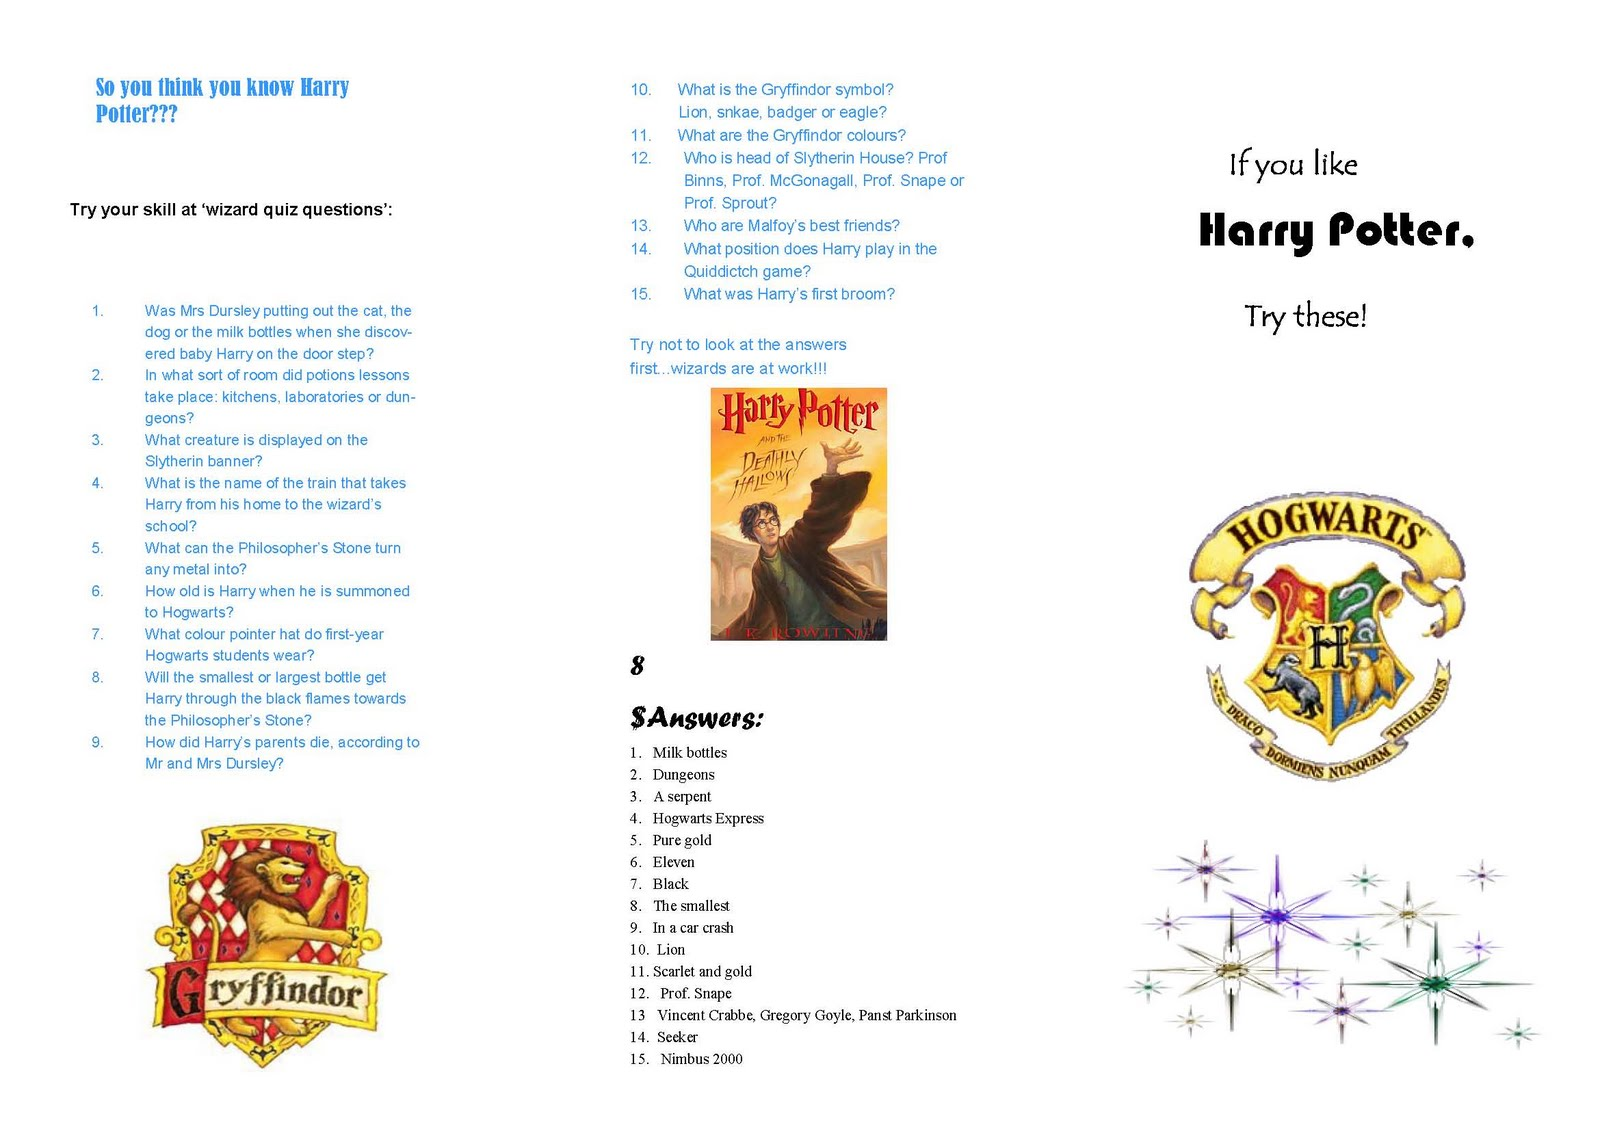 Harry Potter Book In Pdf Format Free Download : Harry potter book pdf free download freemixbt